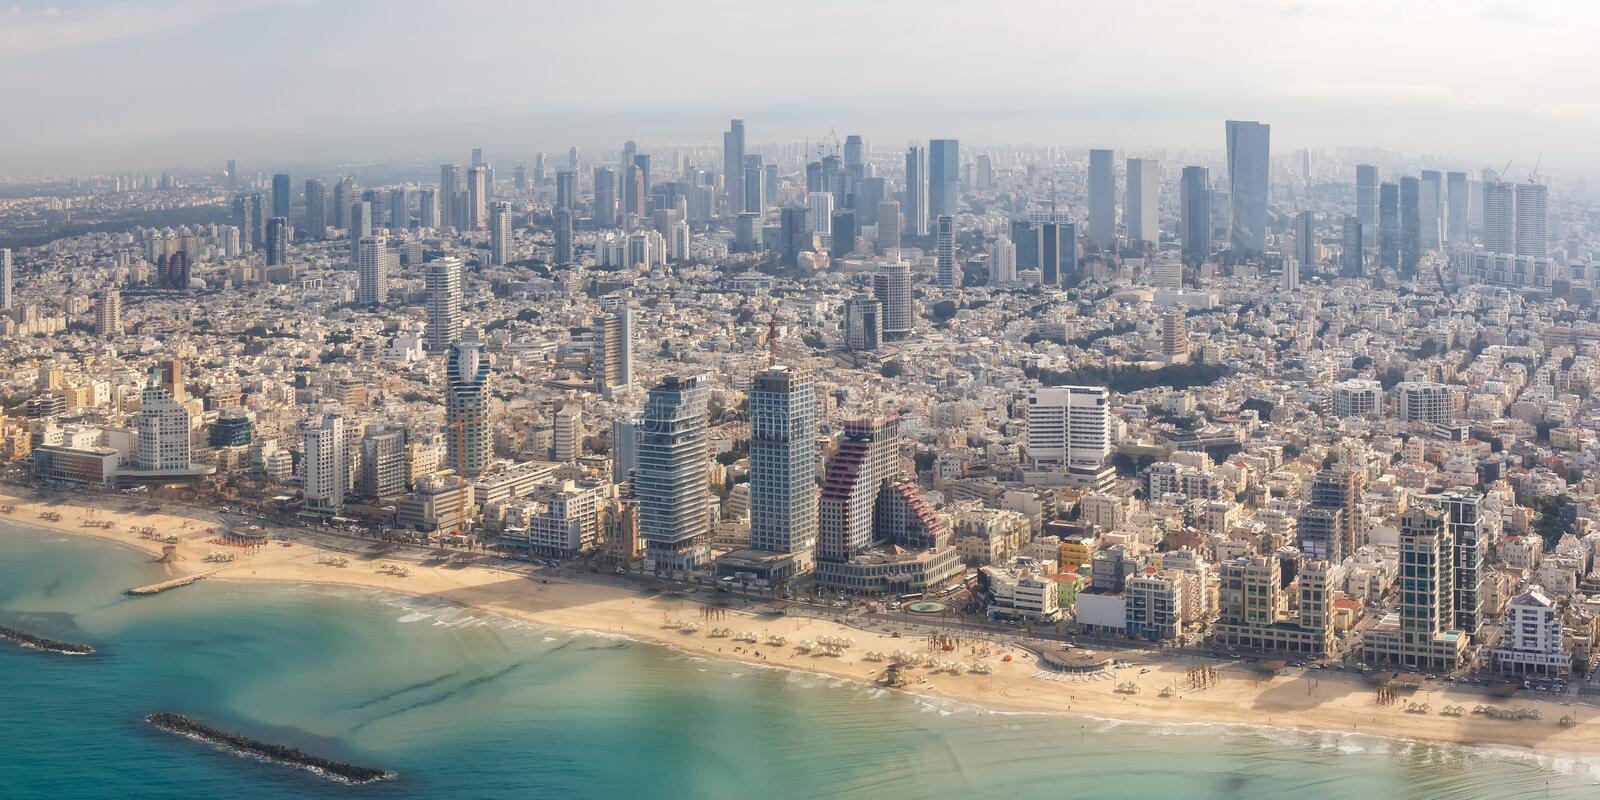 Tel Aviv skyline panorama Israel beach aerial view city sea skyscrapers stock images